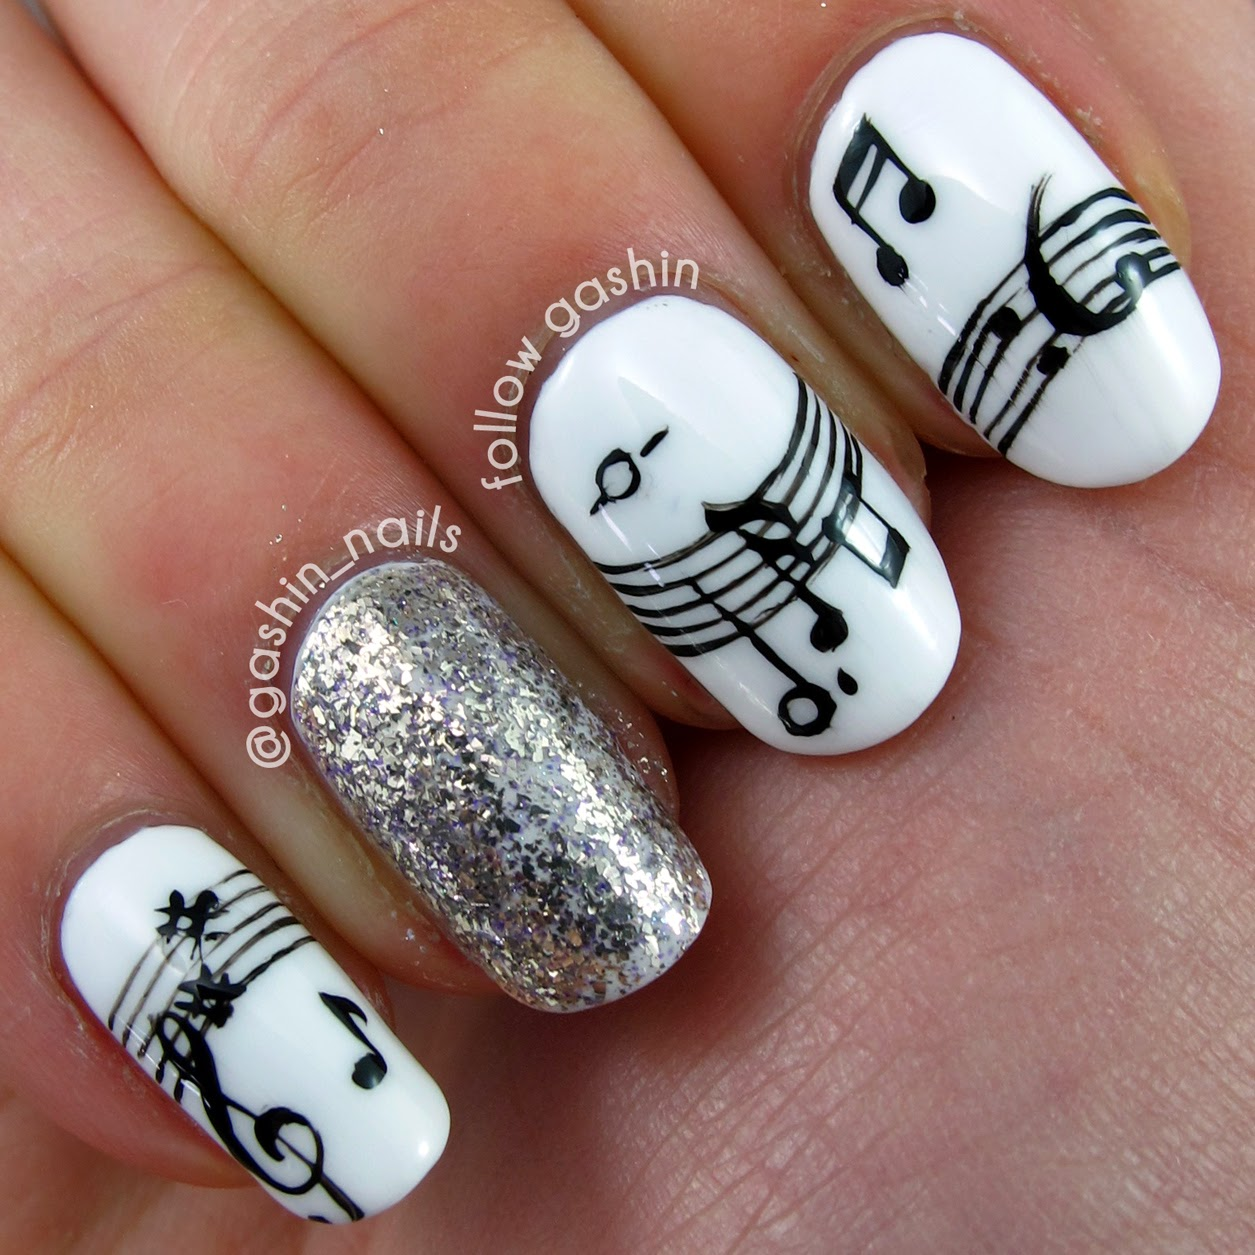 Excellent The Best Nude Nail Polish Tiny Can You Use Regular Nail Polish With Gel Rectangular Loose Glitter Nail Art Nail Fungus Home Treatment Young Acrylic Nail Fungus Pictures OrangeBest Nail Polish Top Coat And Base Coat Black And White Nail Art Music Notes Images